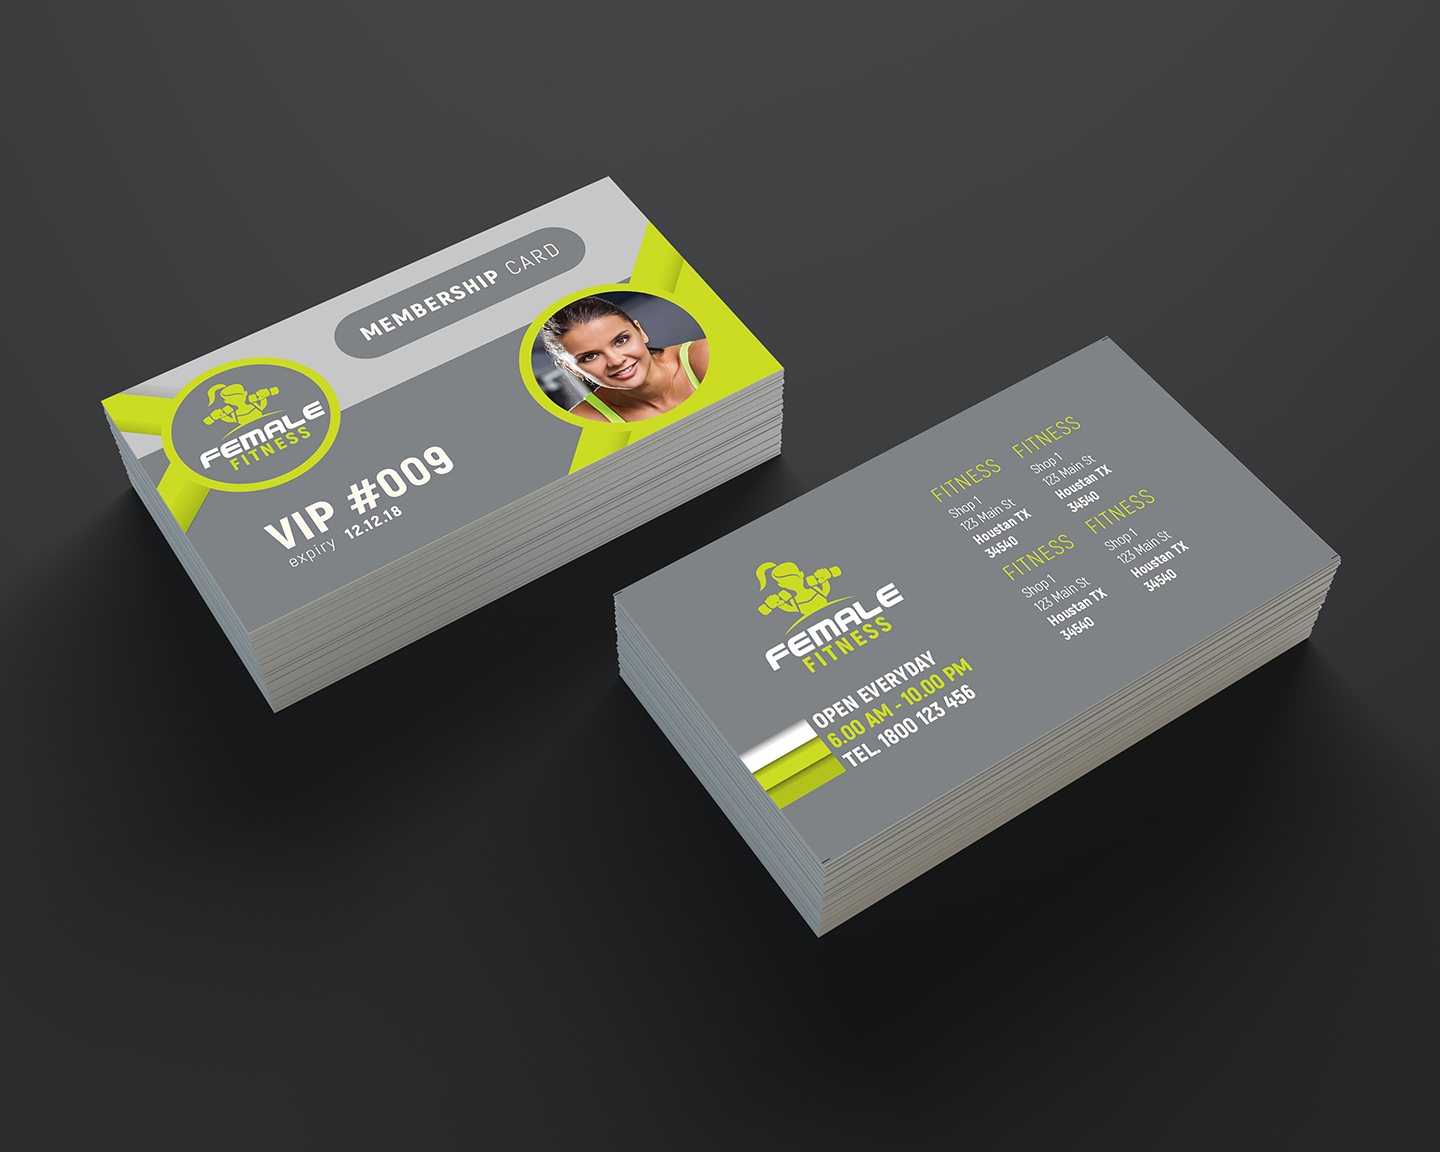 Free personal business card templates gallery business card template personal business cards australia gallery card design and card free personal business card templates mandegarfo free reheart Gallery